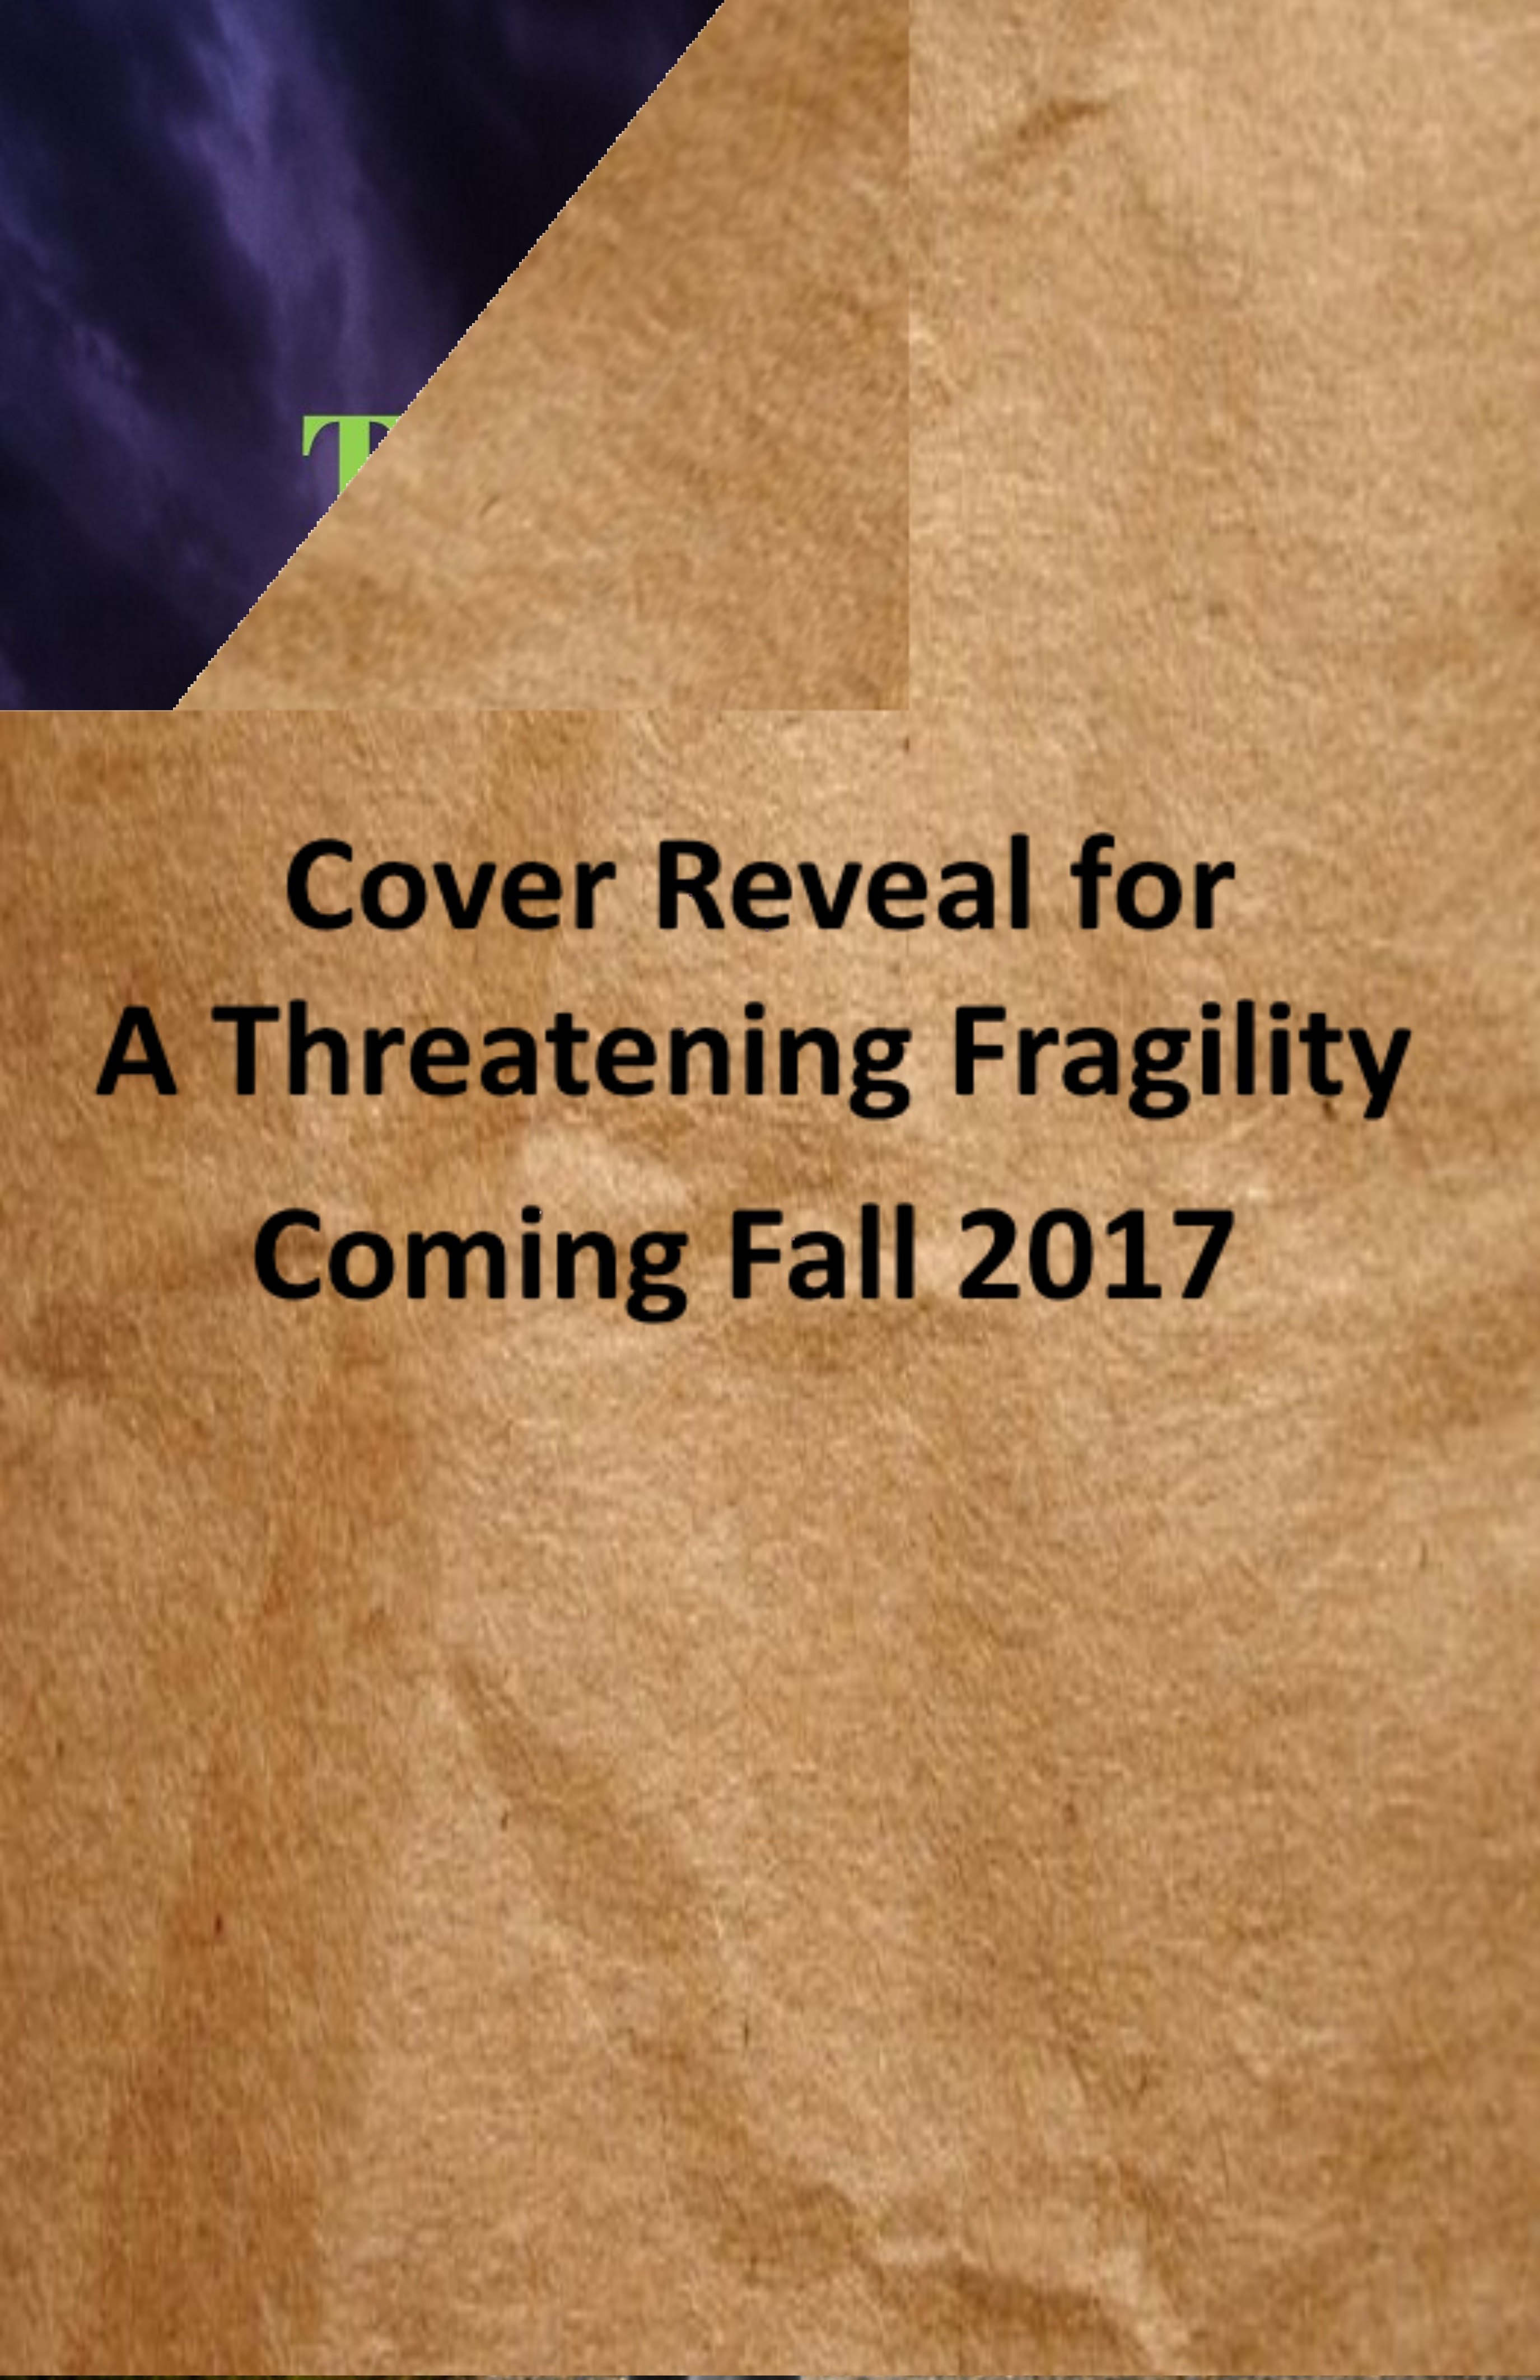 Cover Reveal for A Threatening Fragility 2